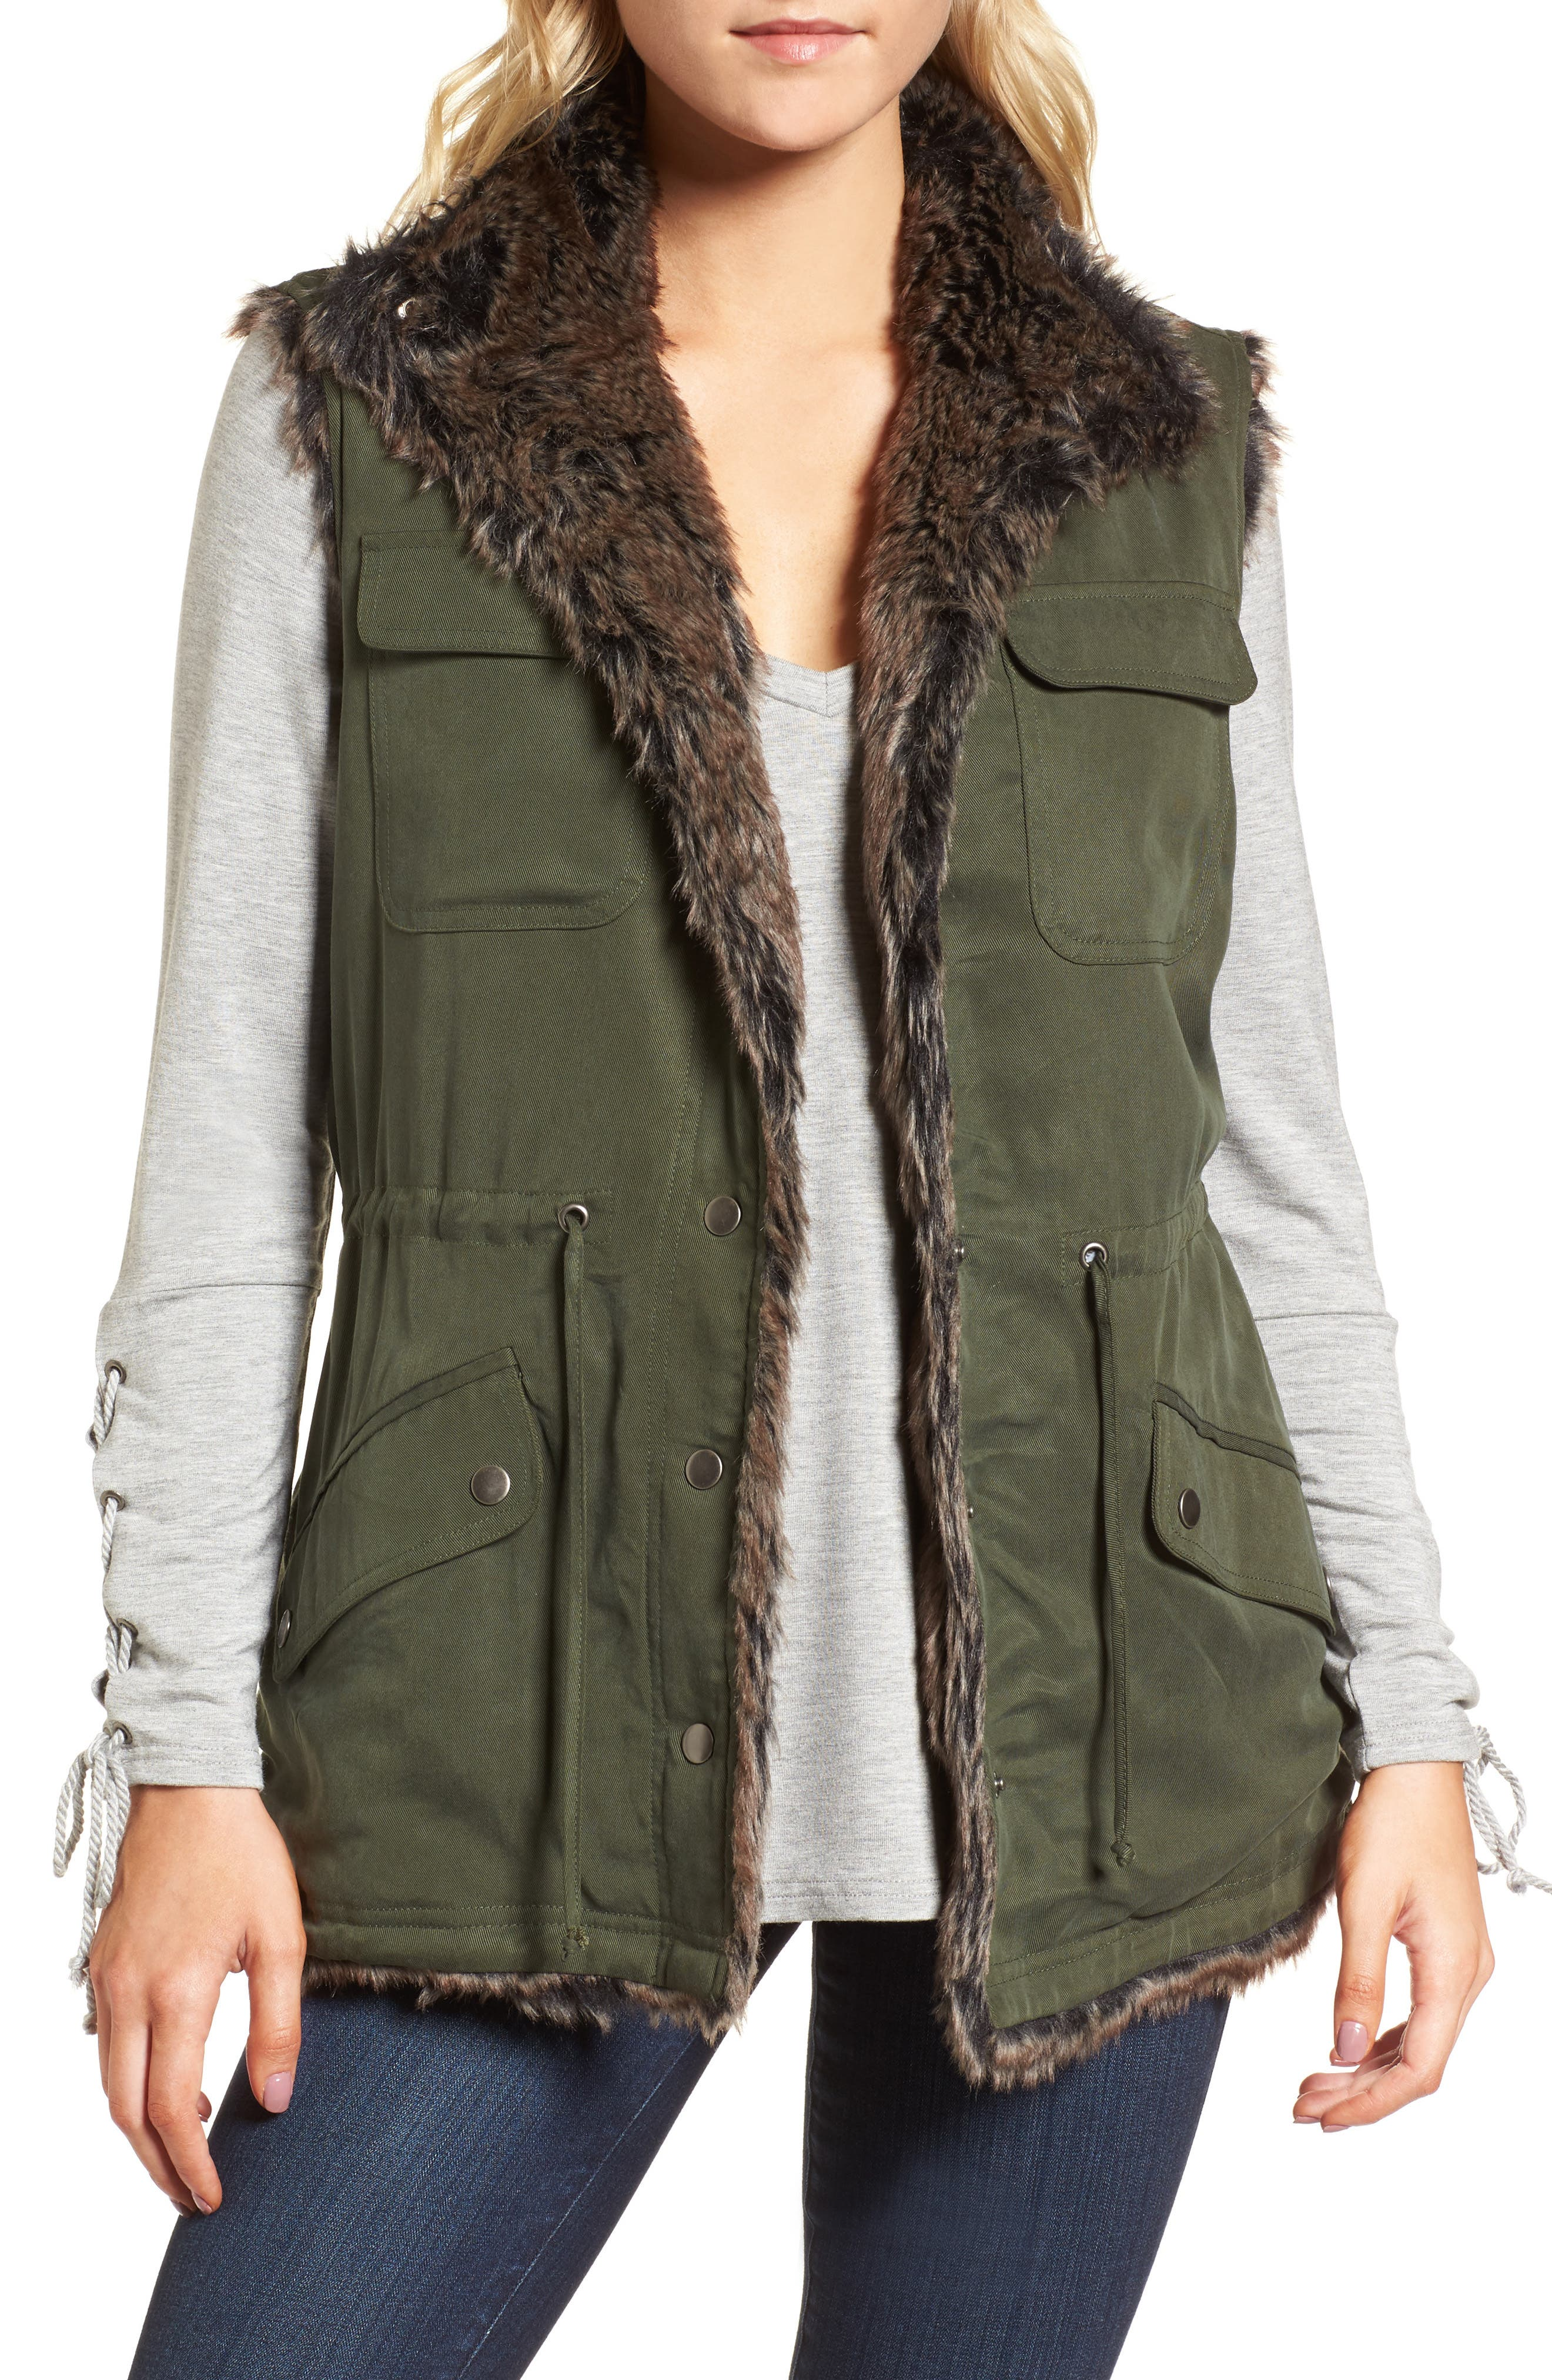 Alternate Image 1 Selected - cupcakes and cashmere Ashling Faux Fur Lined Utility Vest